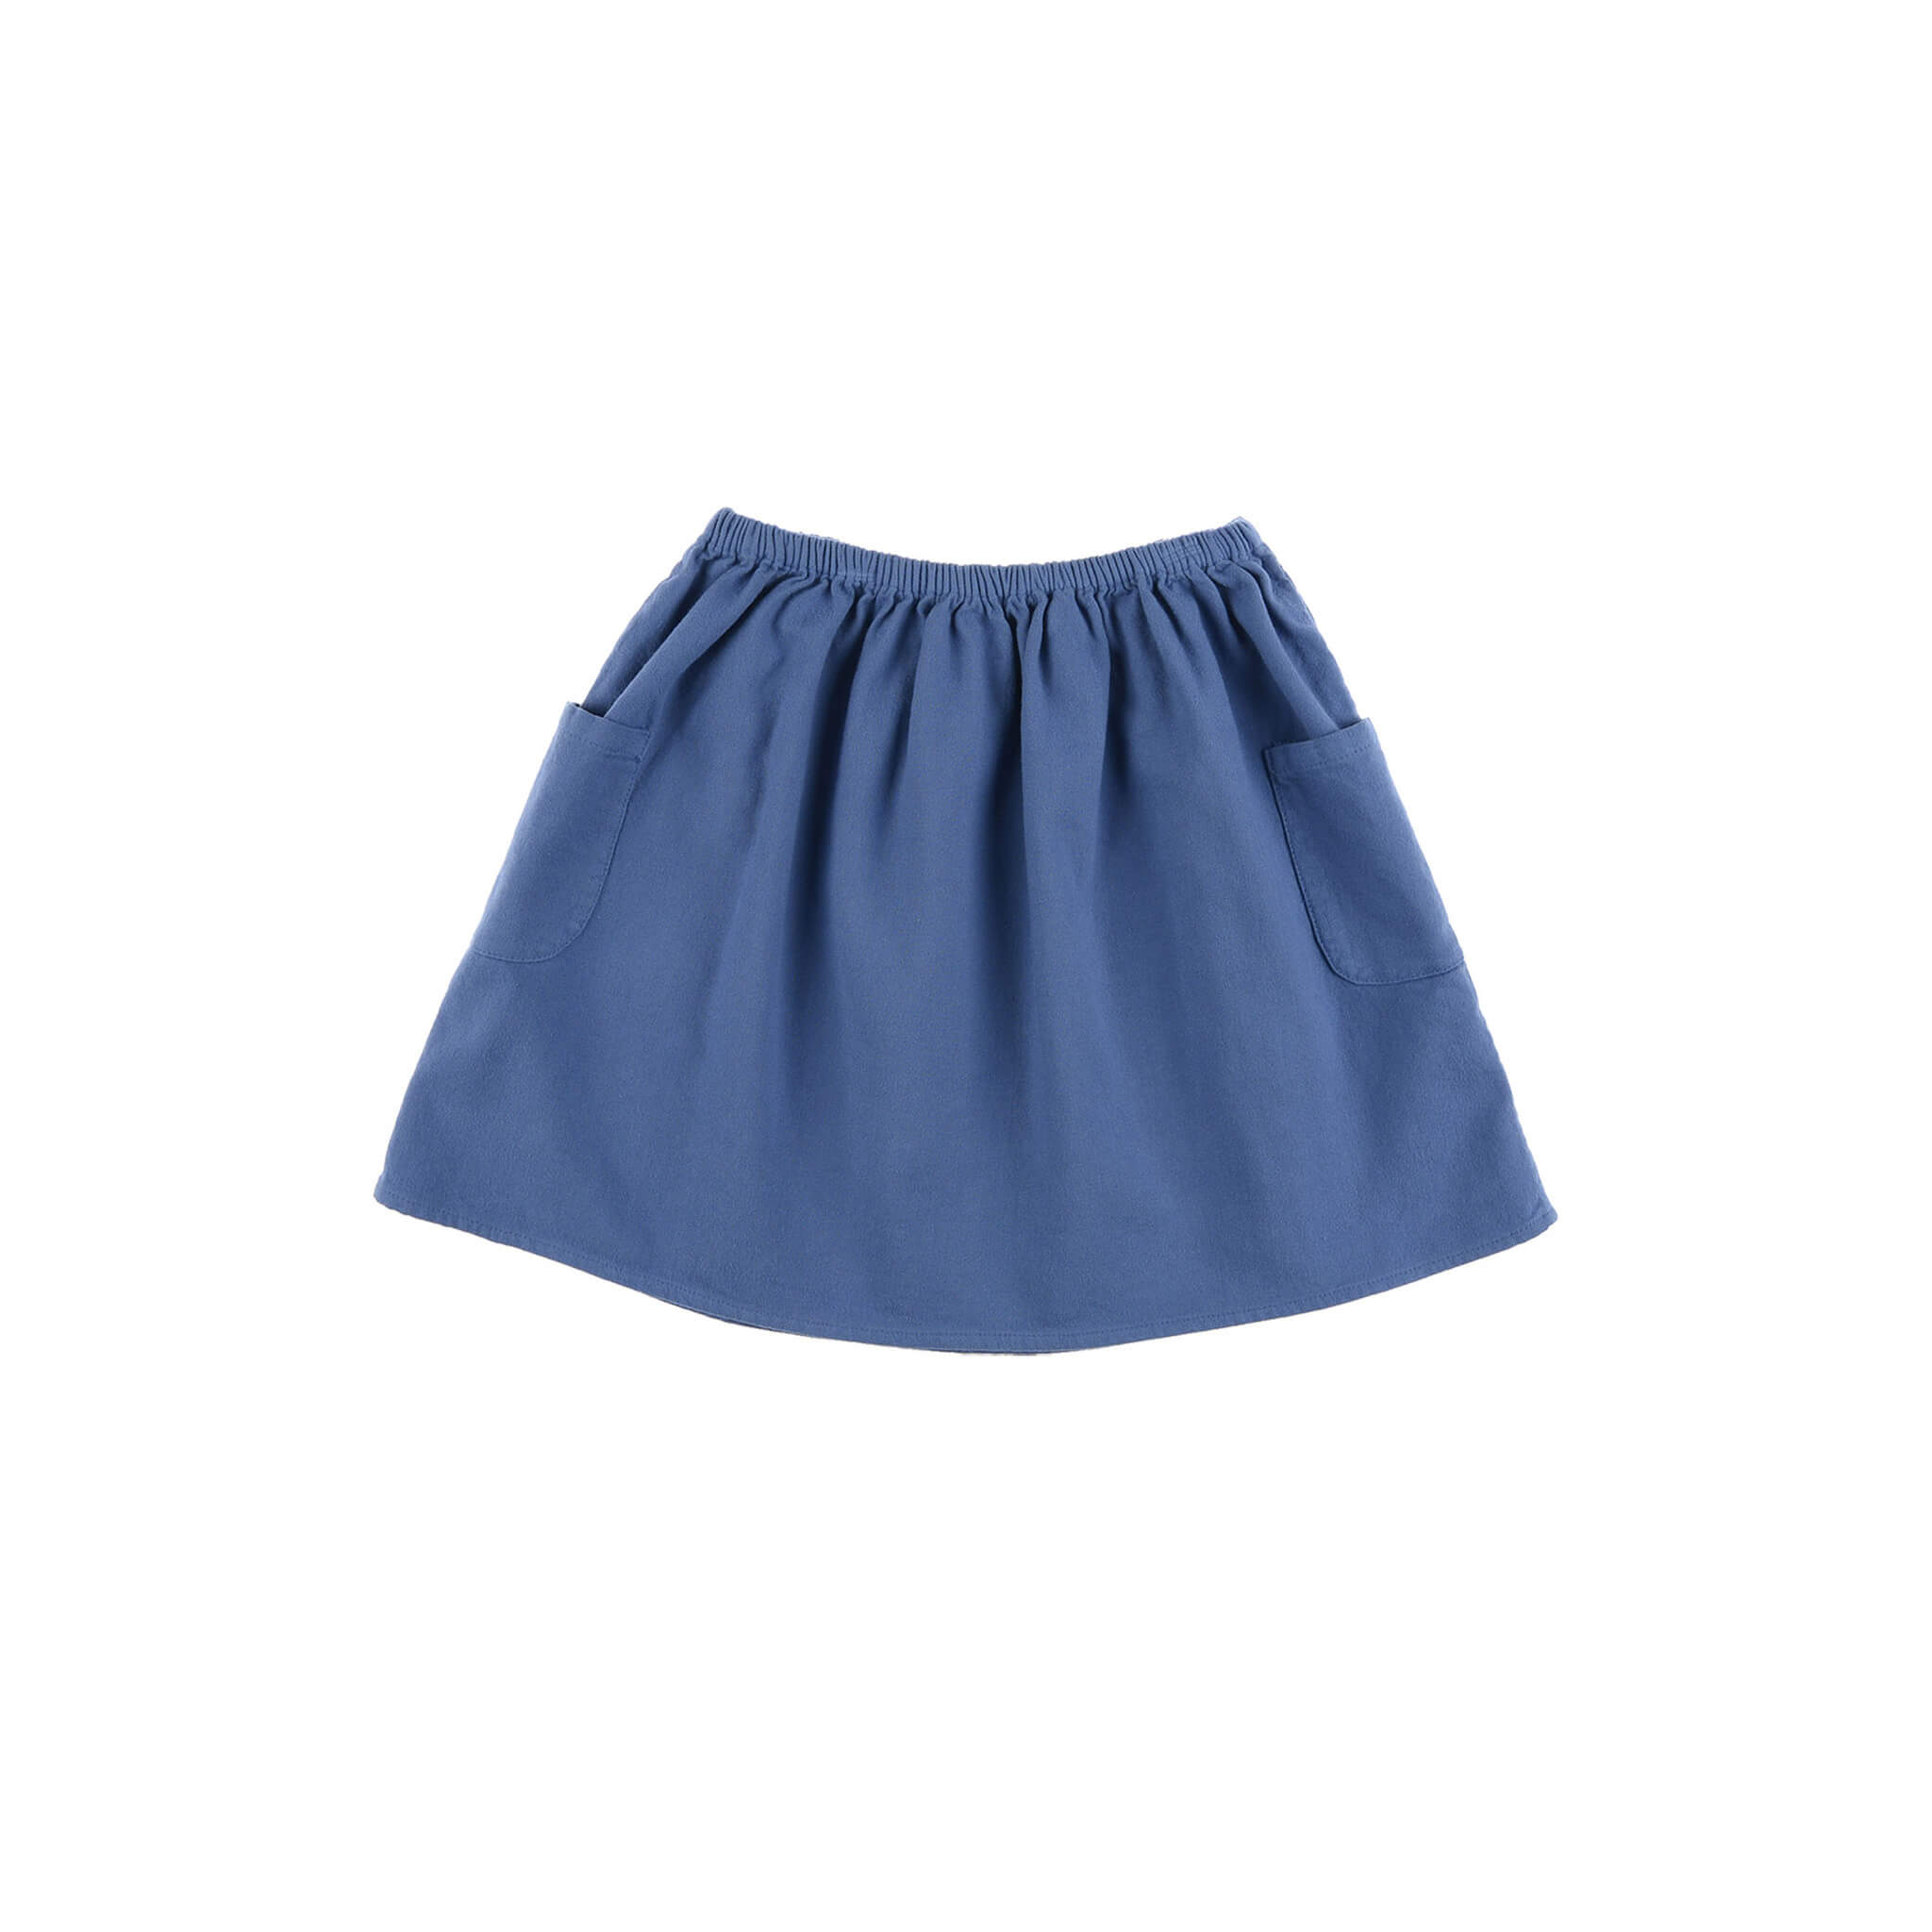 Pepe&Nika PepeandNika Little Apparel Kids Fashion Omibia girls Flannel Skirt Blue ORGANIC fairtrade autumnal AW 16/17 elegant classic casual cotton vernal